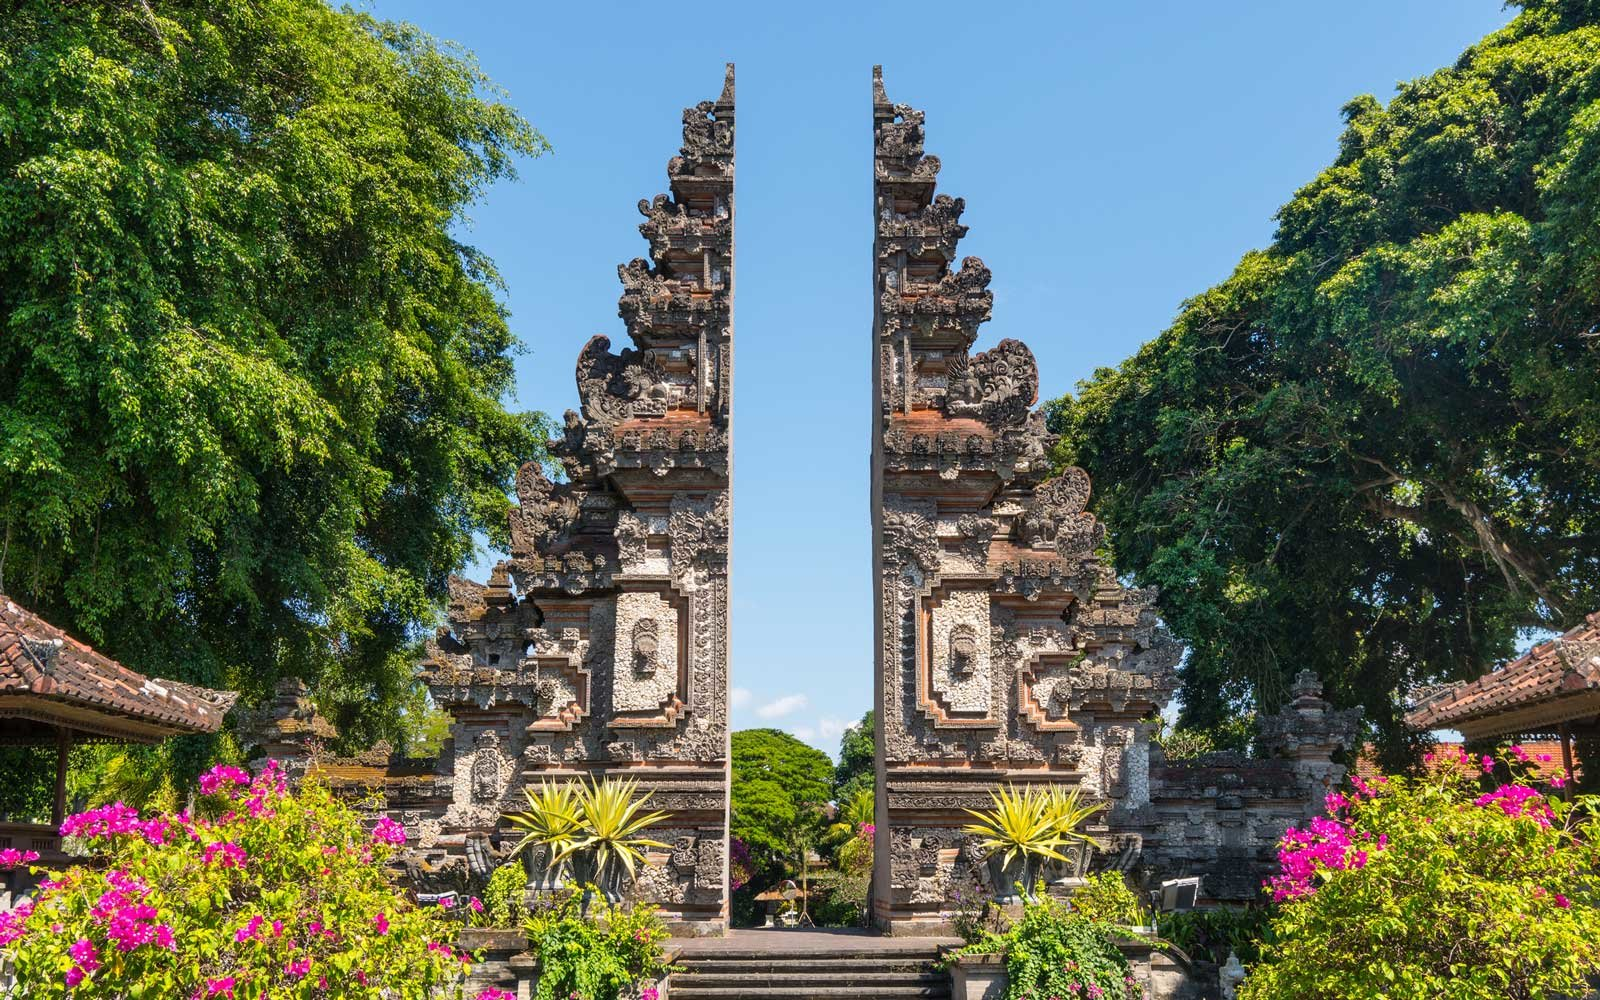 The candi bentar split gate, Bali, Indoneisa